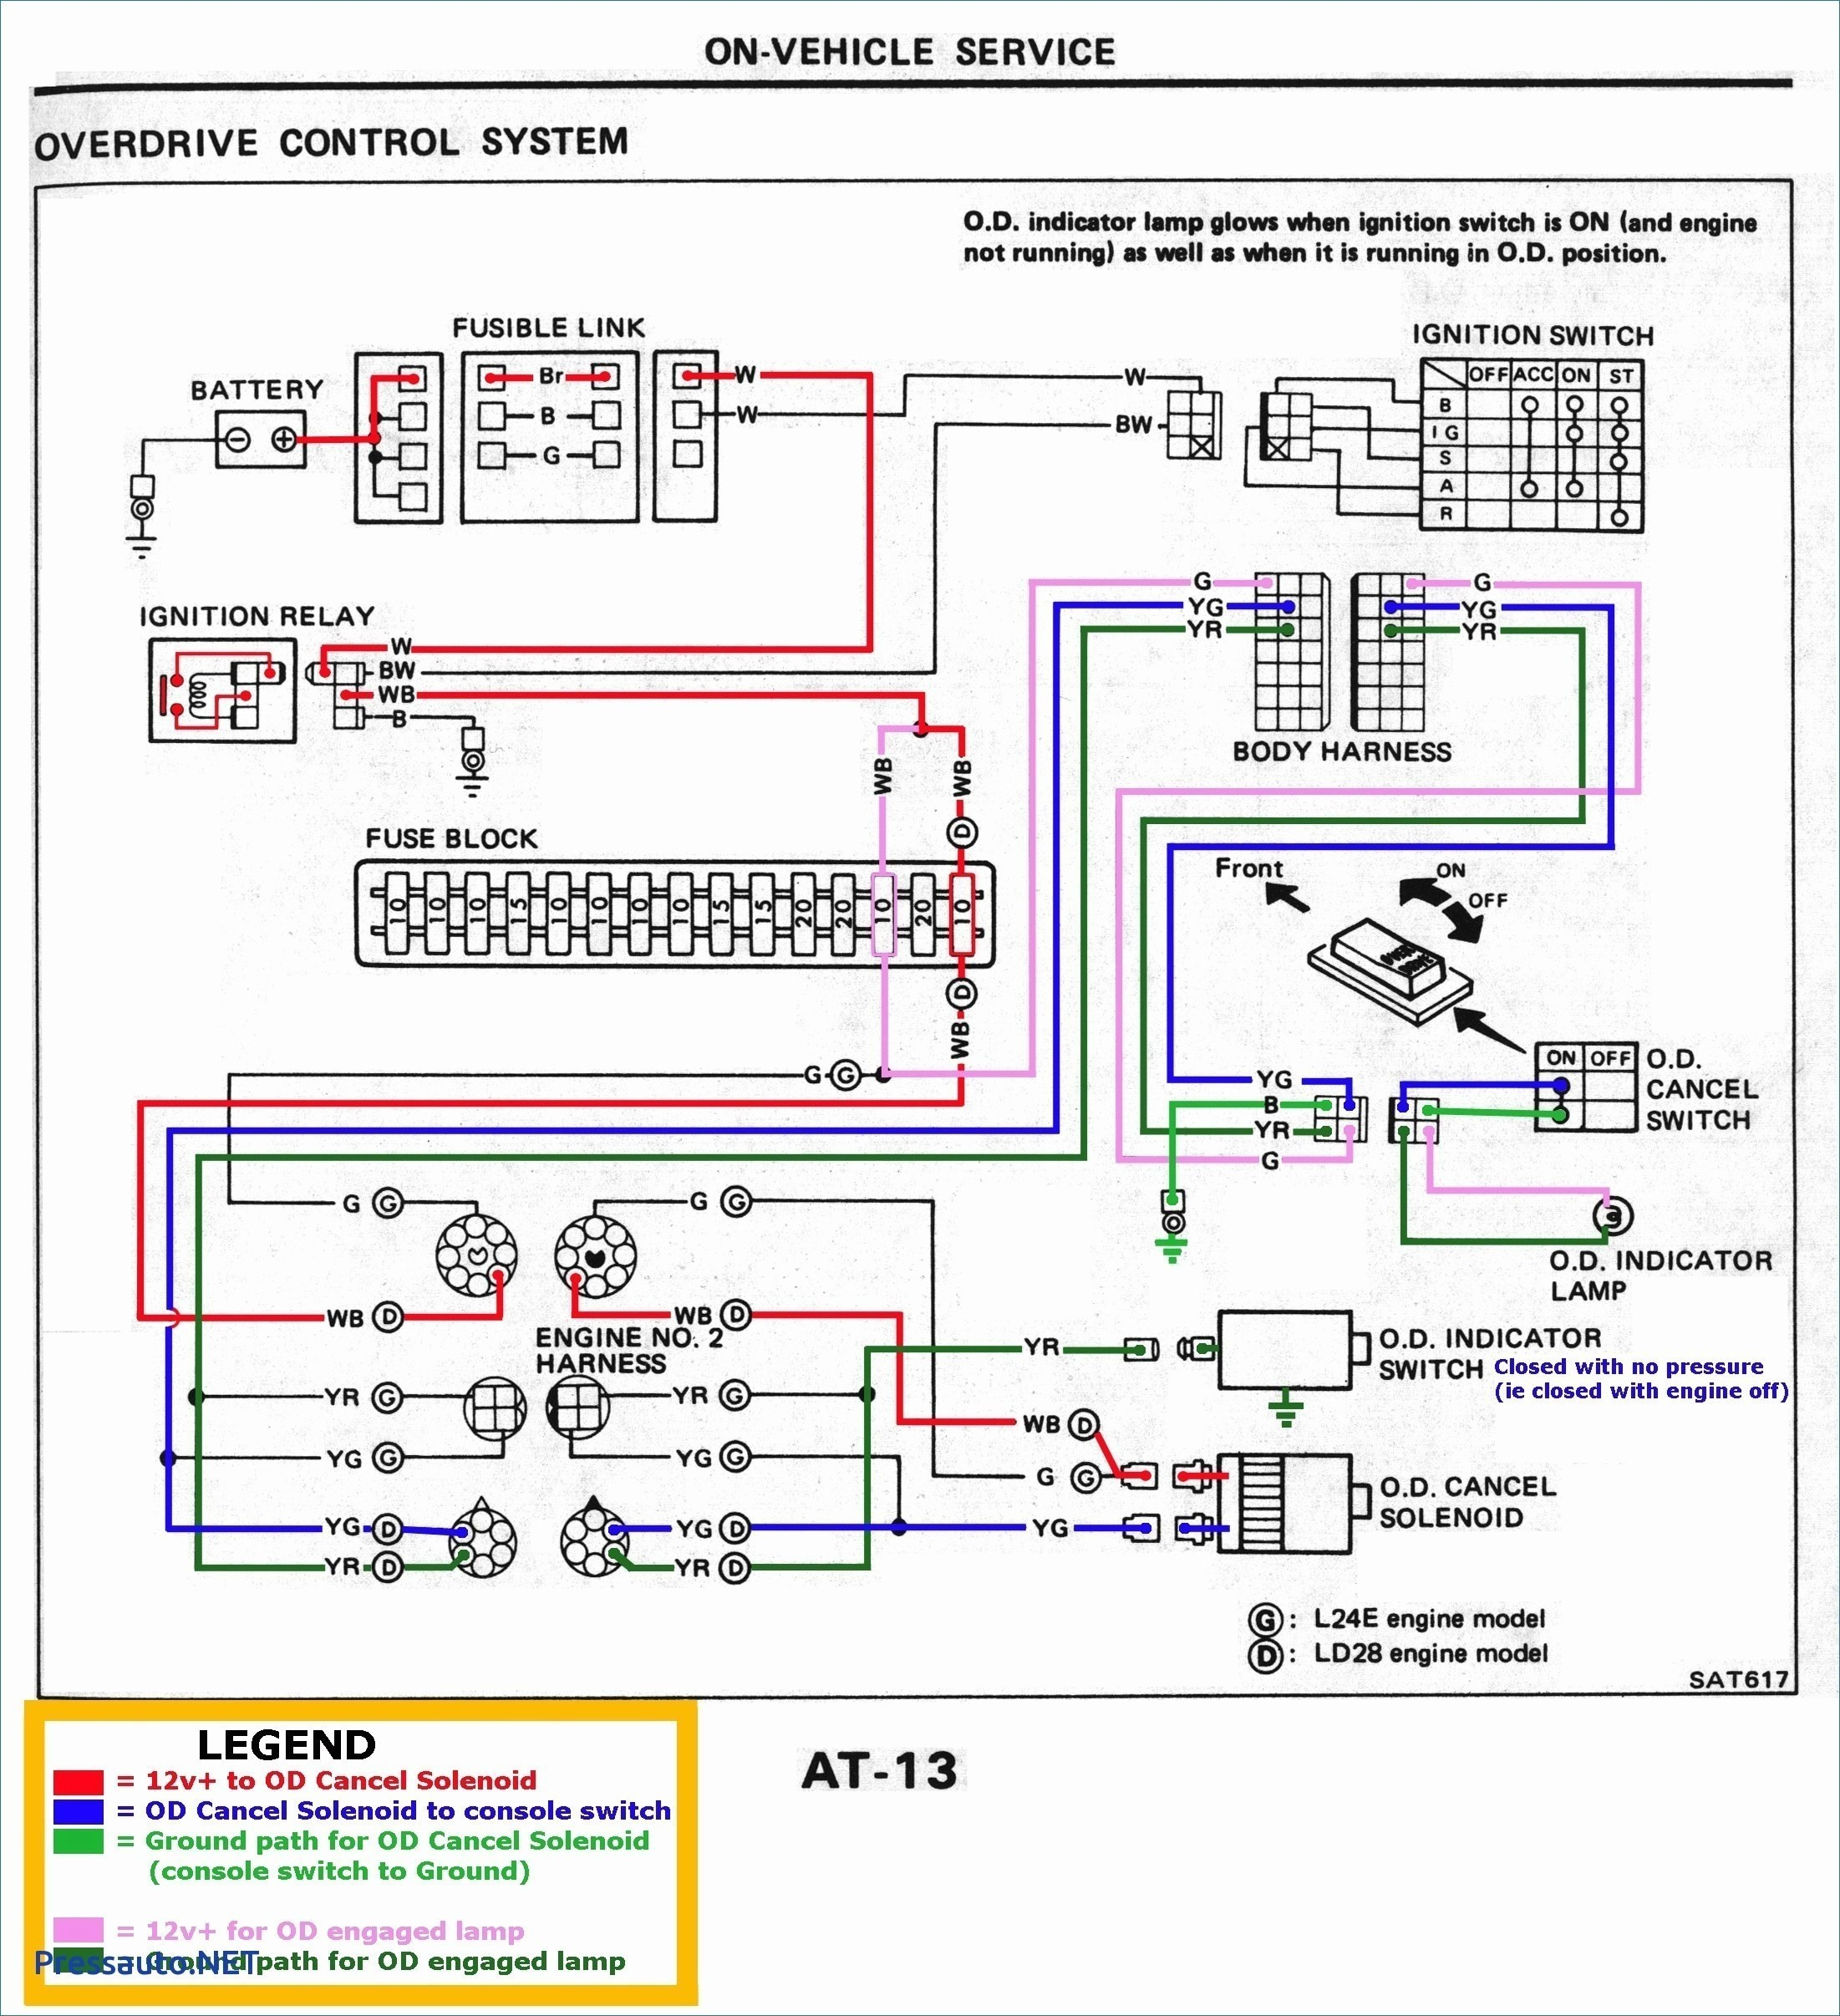 Coil Ignition System Diagram E36 Ignition Switch Wiring Diagram Best Wiring Diagram for Ignition Of Coil Ignition System Diagram